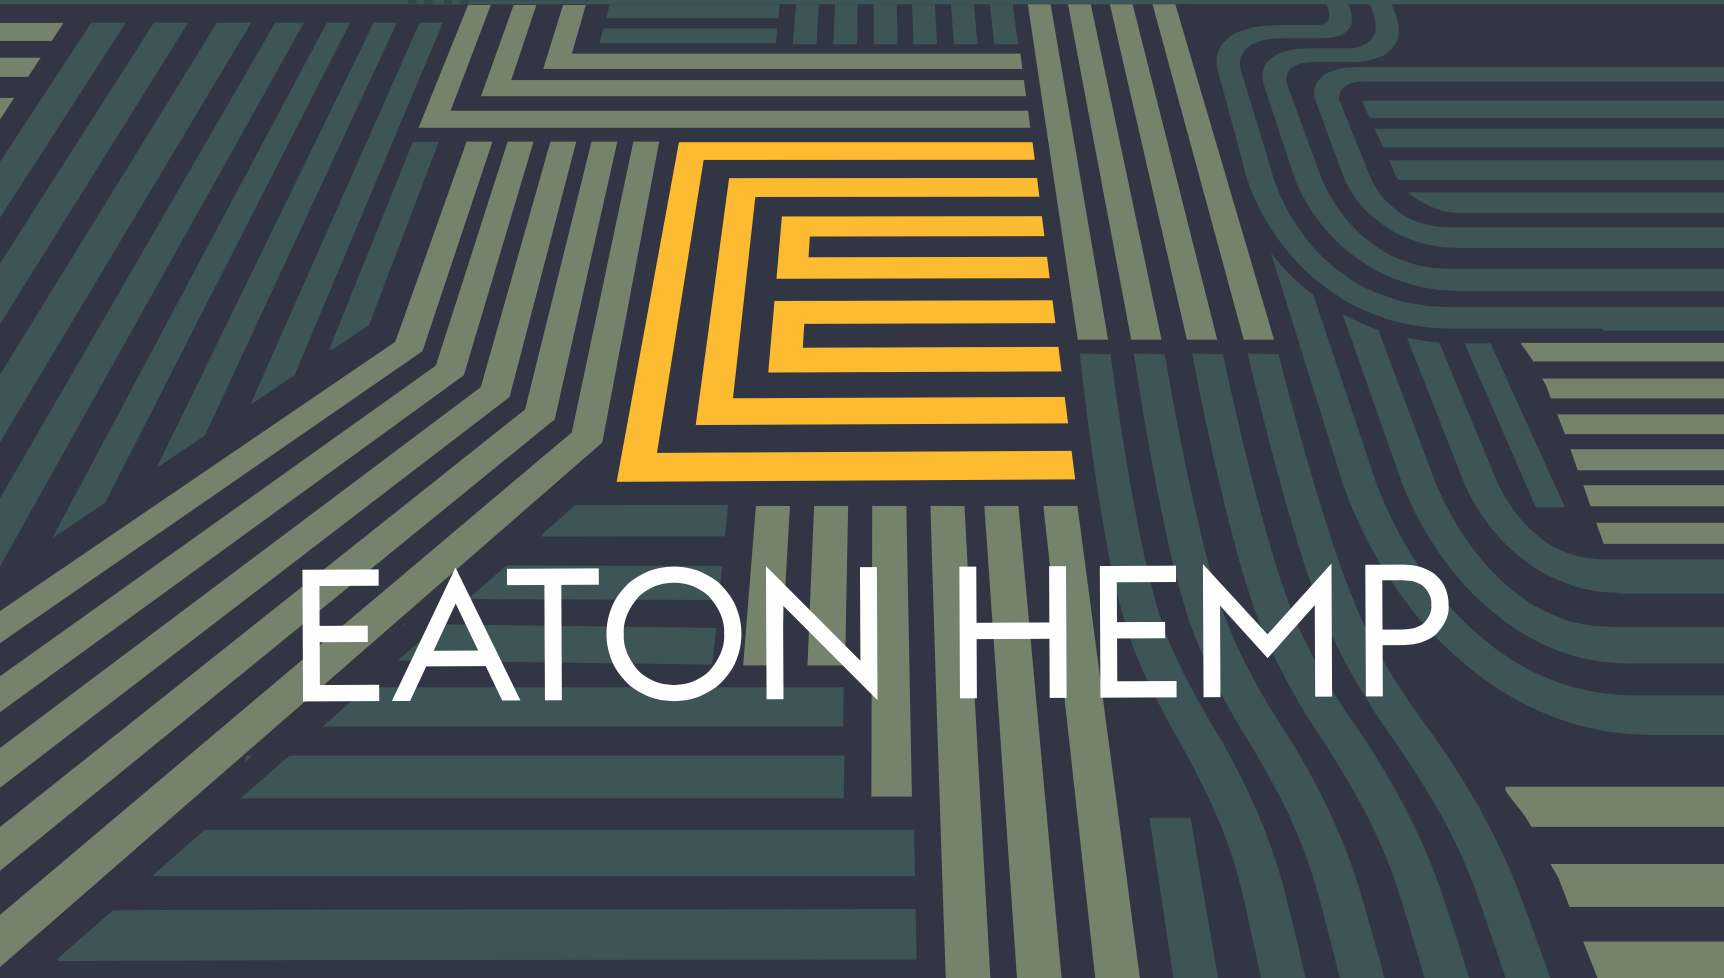 EATON HEMP: Always Organic.